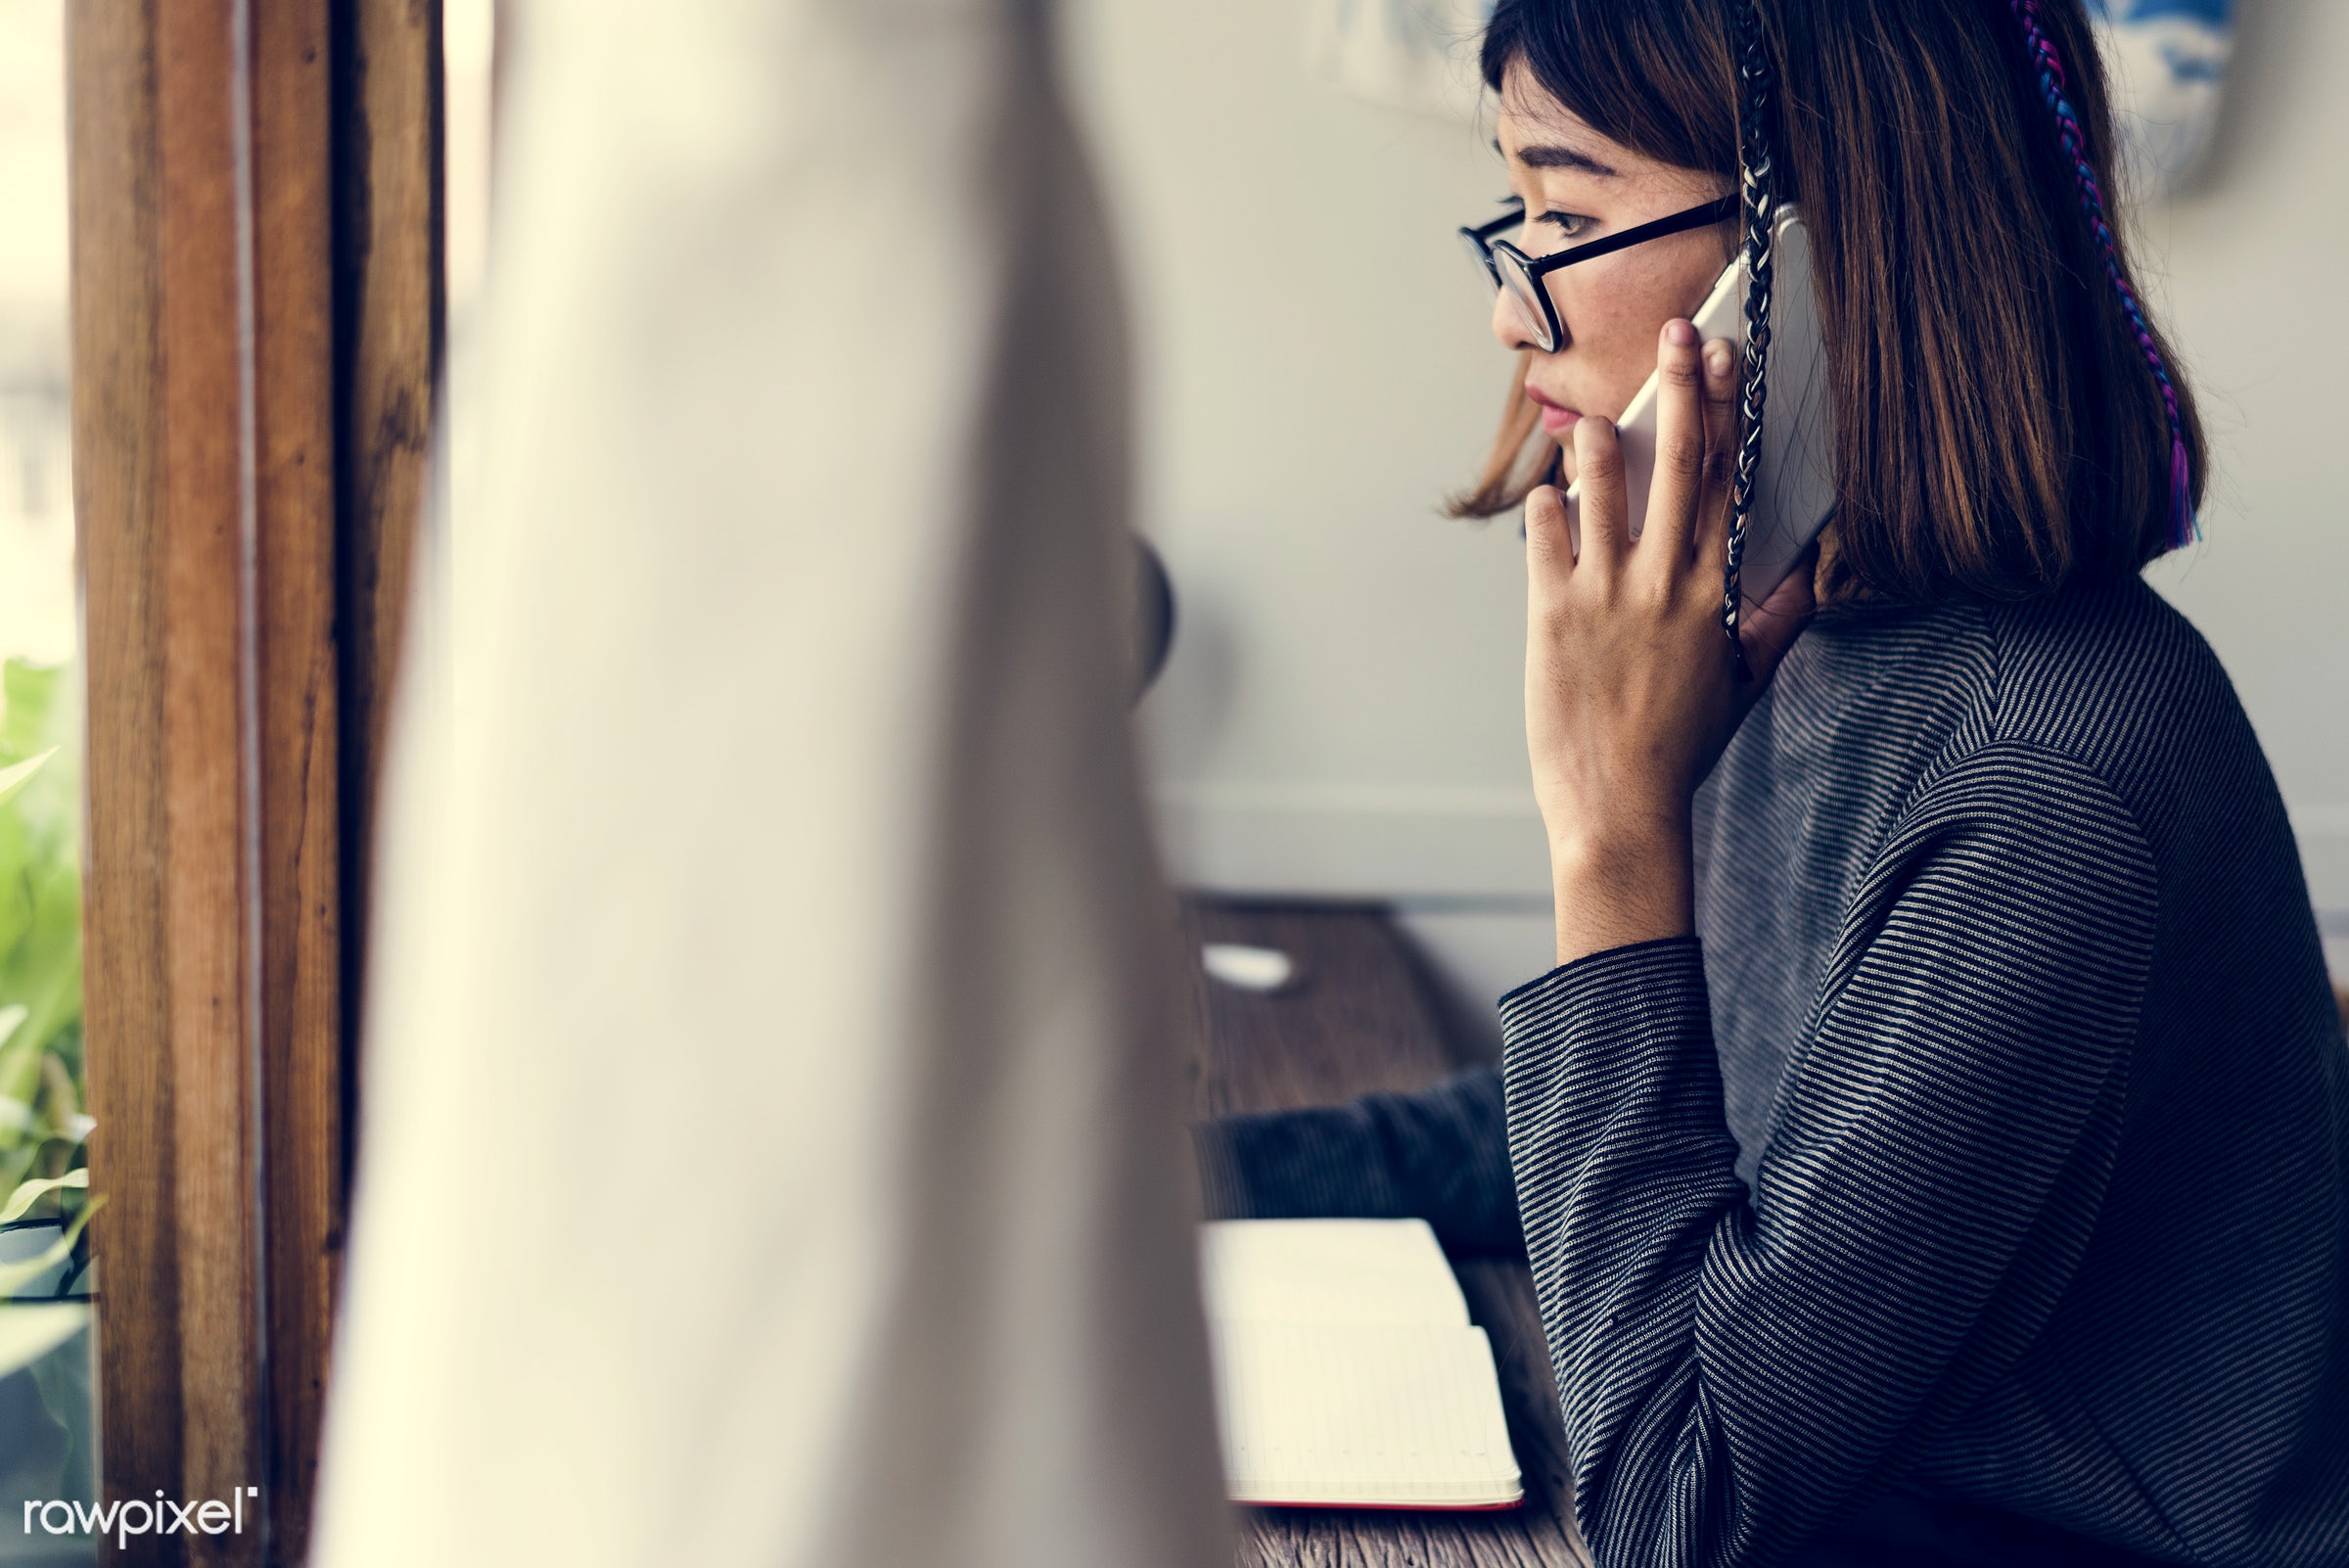 girl, woman, talking, phone, phonecall, communication, smartphone, mobile, call, person